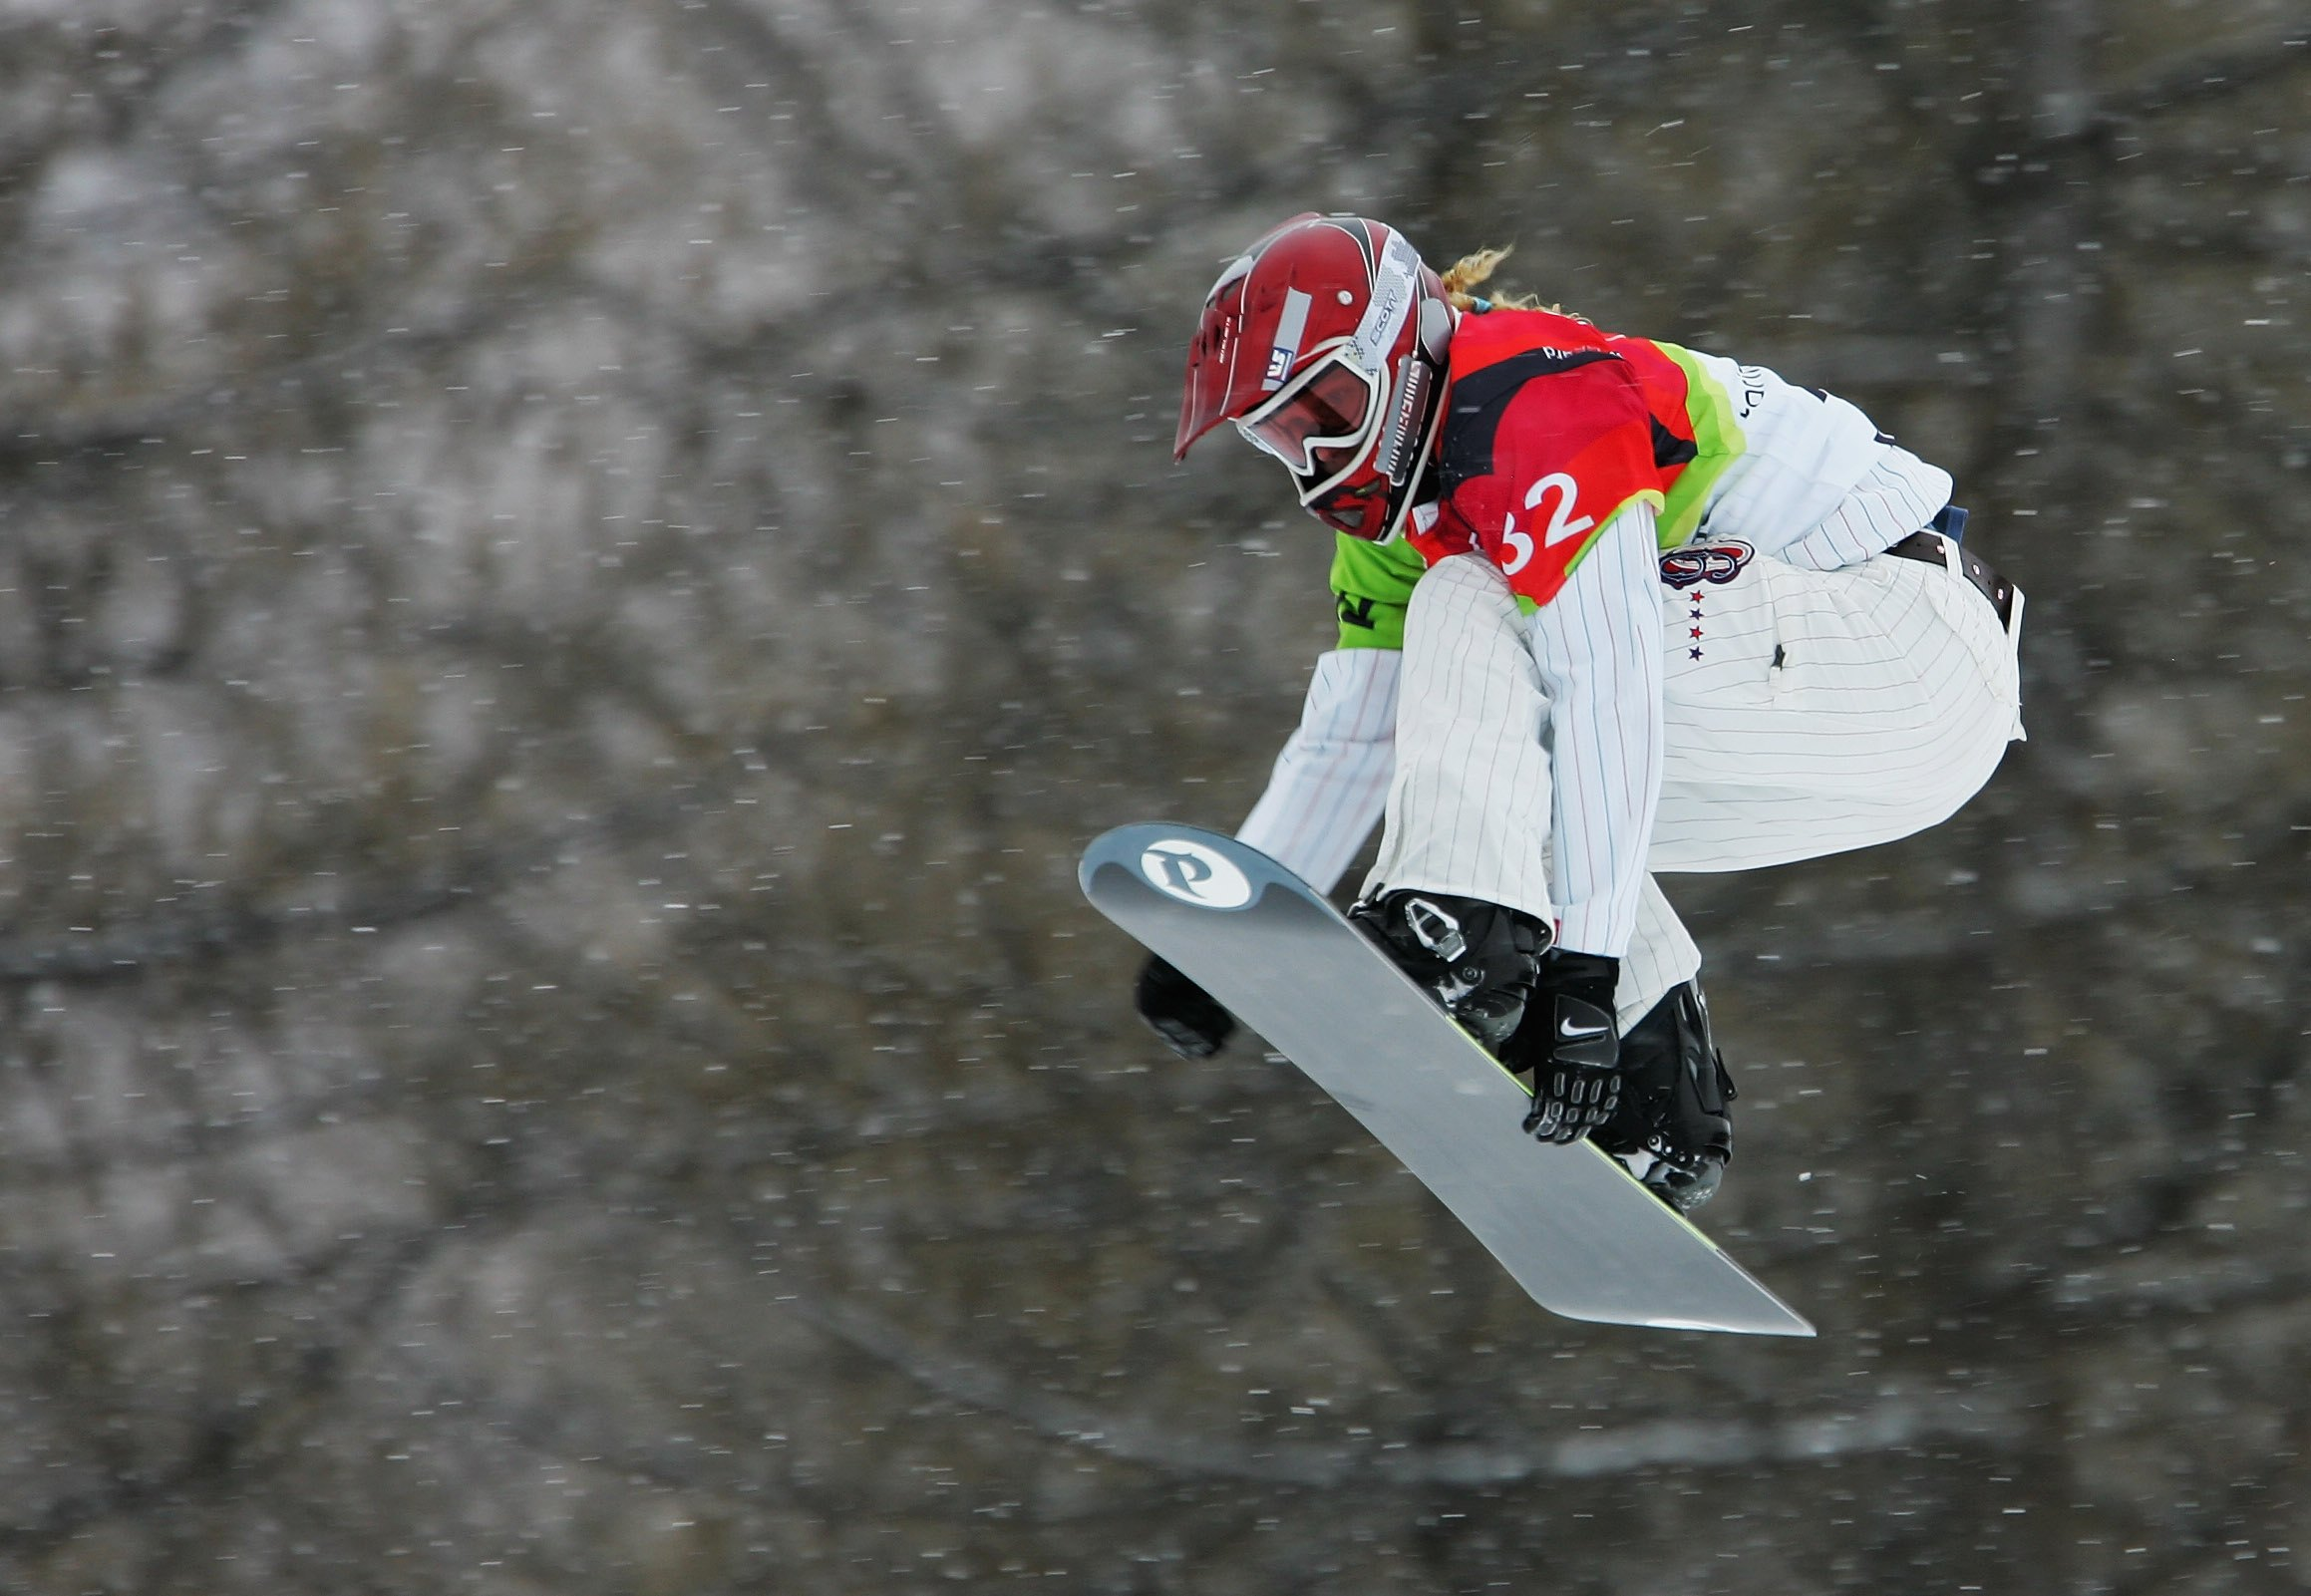 BARDONECCHIA, ITALY - FEBRUARY 17:  Lindsey Jacobellis of the United States competes in the Womens Snowboard Cross Qualifying on Day 7 of the 2006 Turin Winter Olympic Games on February 17, 2006 in Bardonecchia, Italy.  (Photo by Clive Mason/Getty Images)